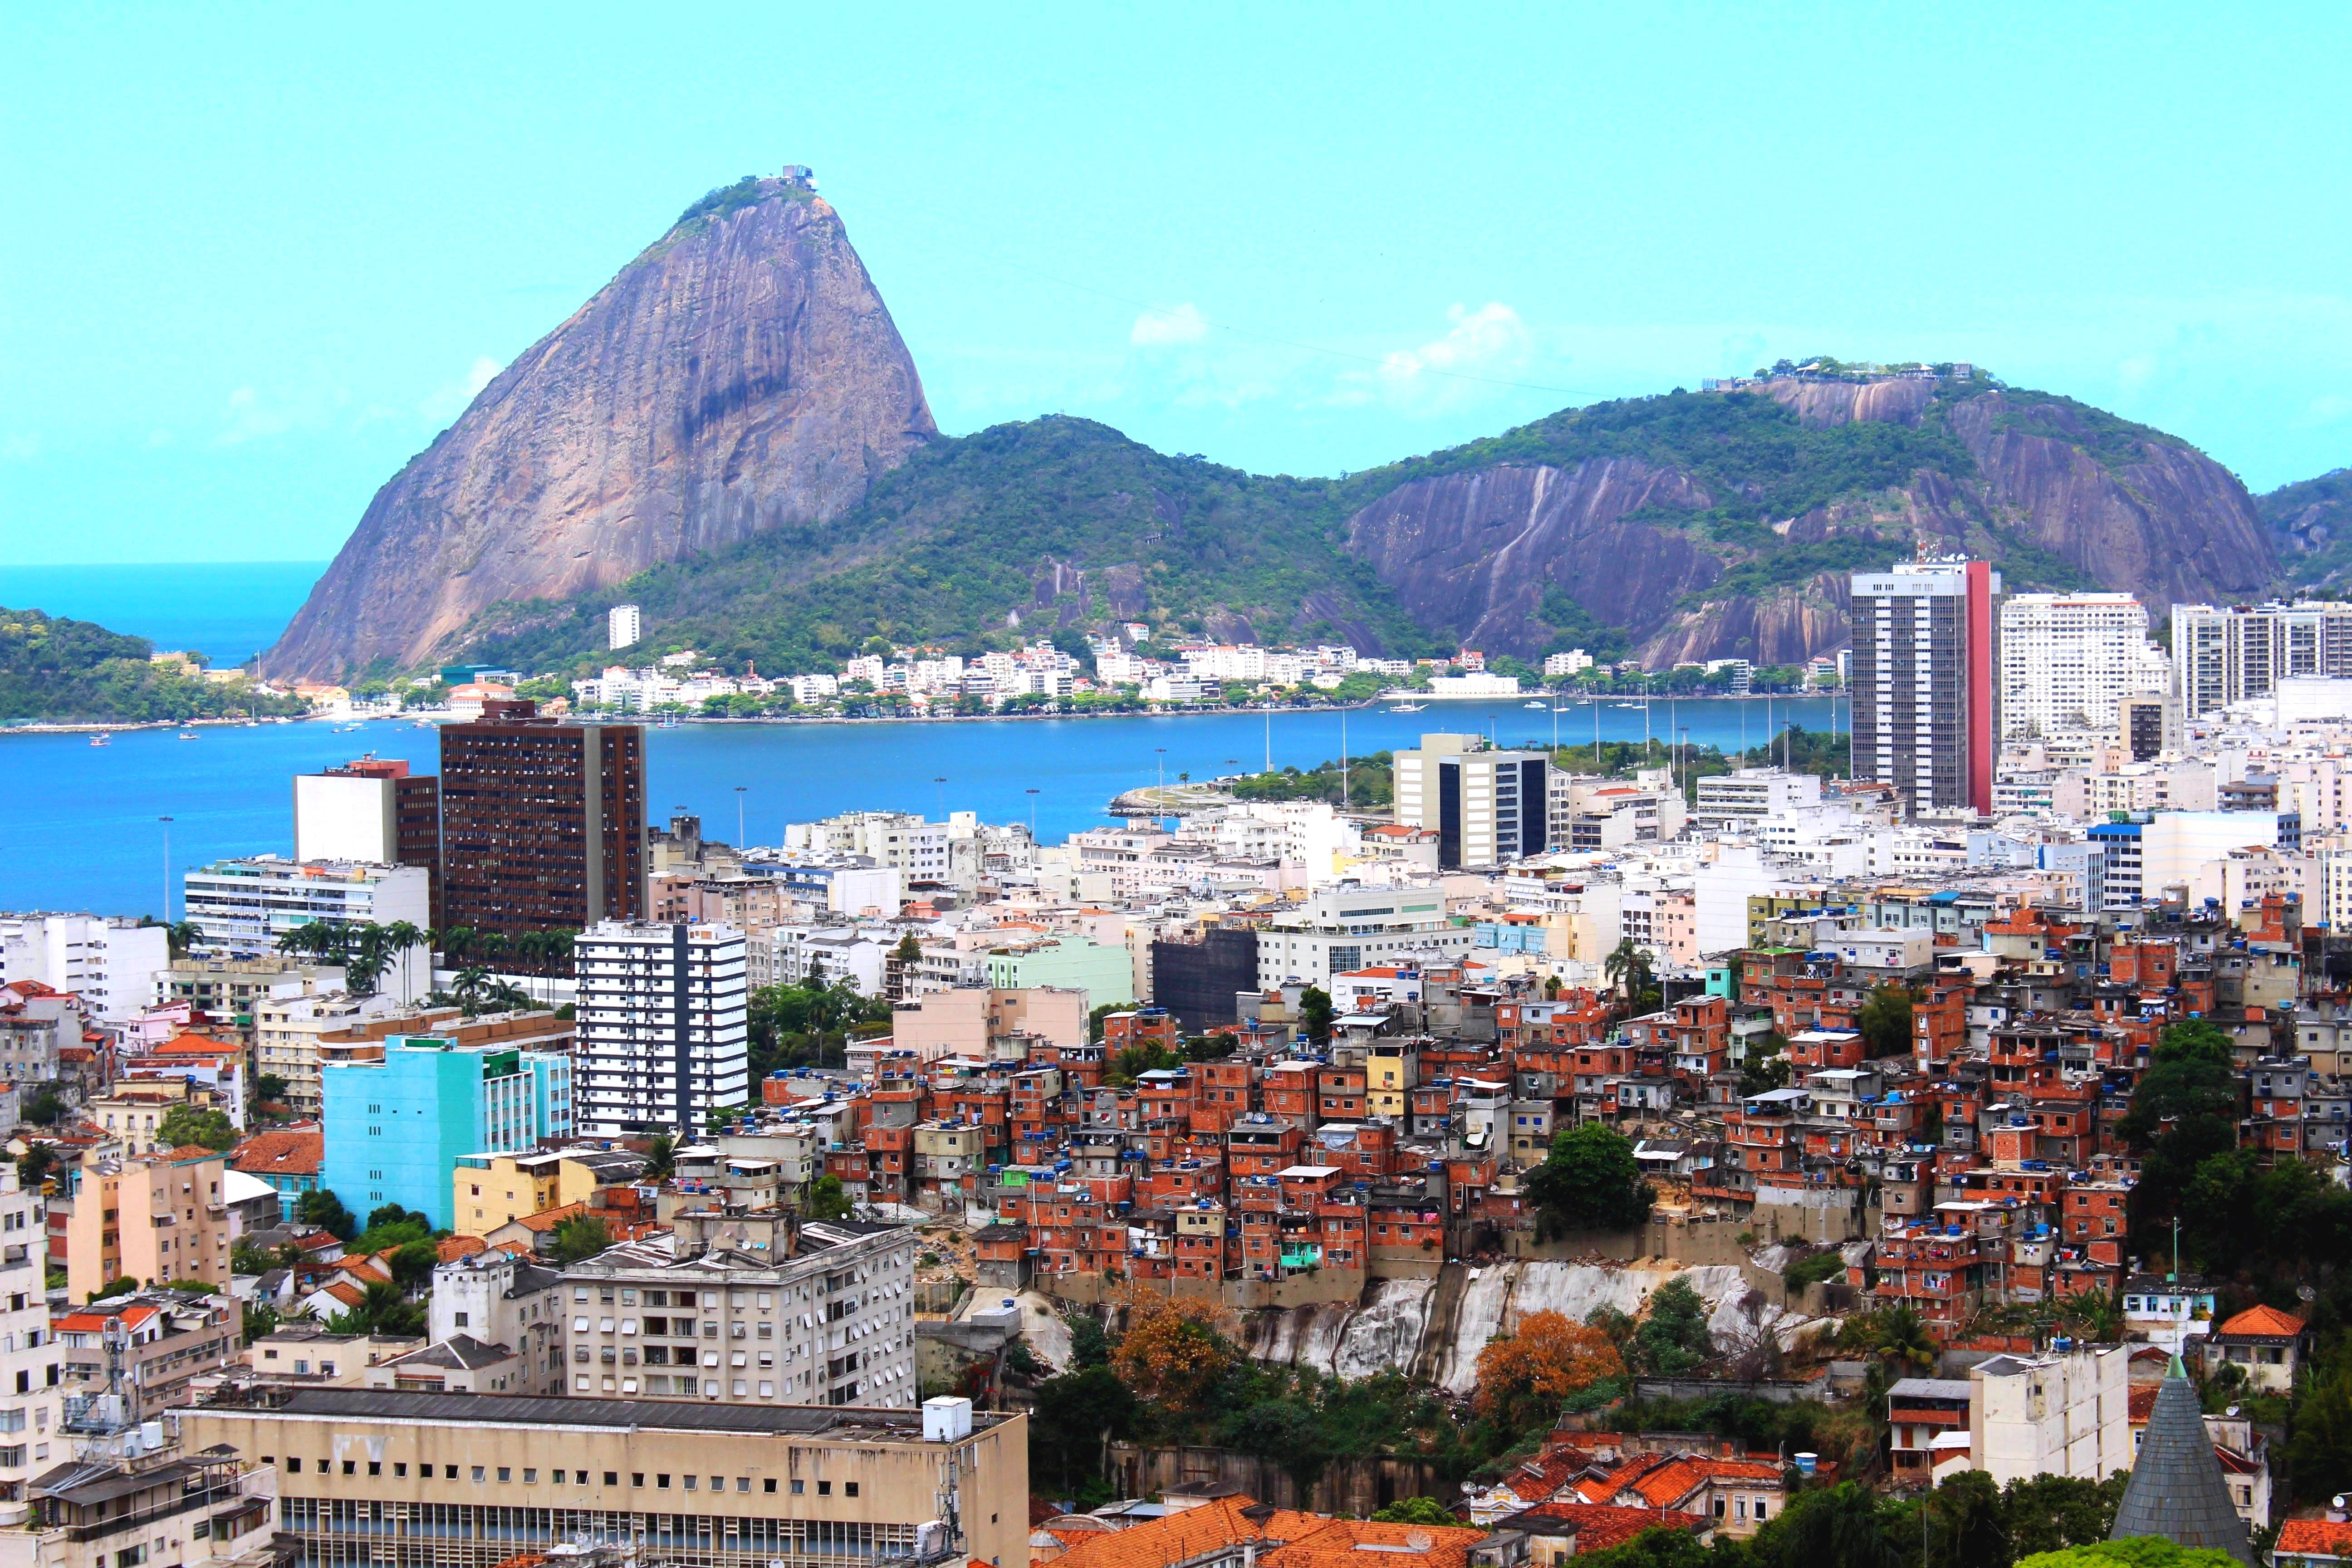 Take a jeep tour and learn about the history of Favela